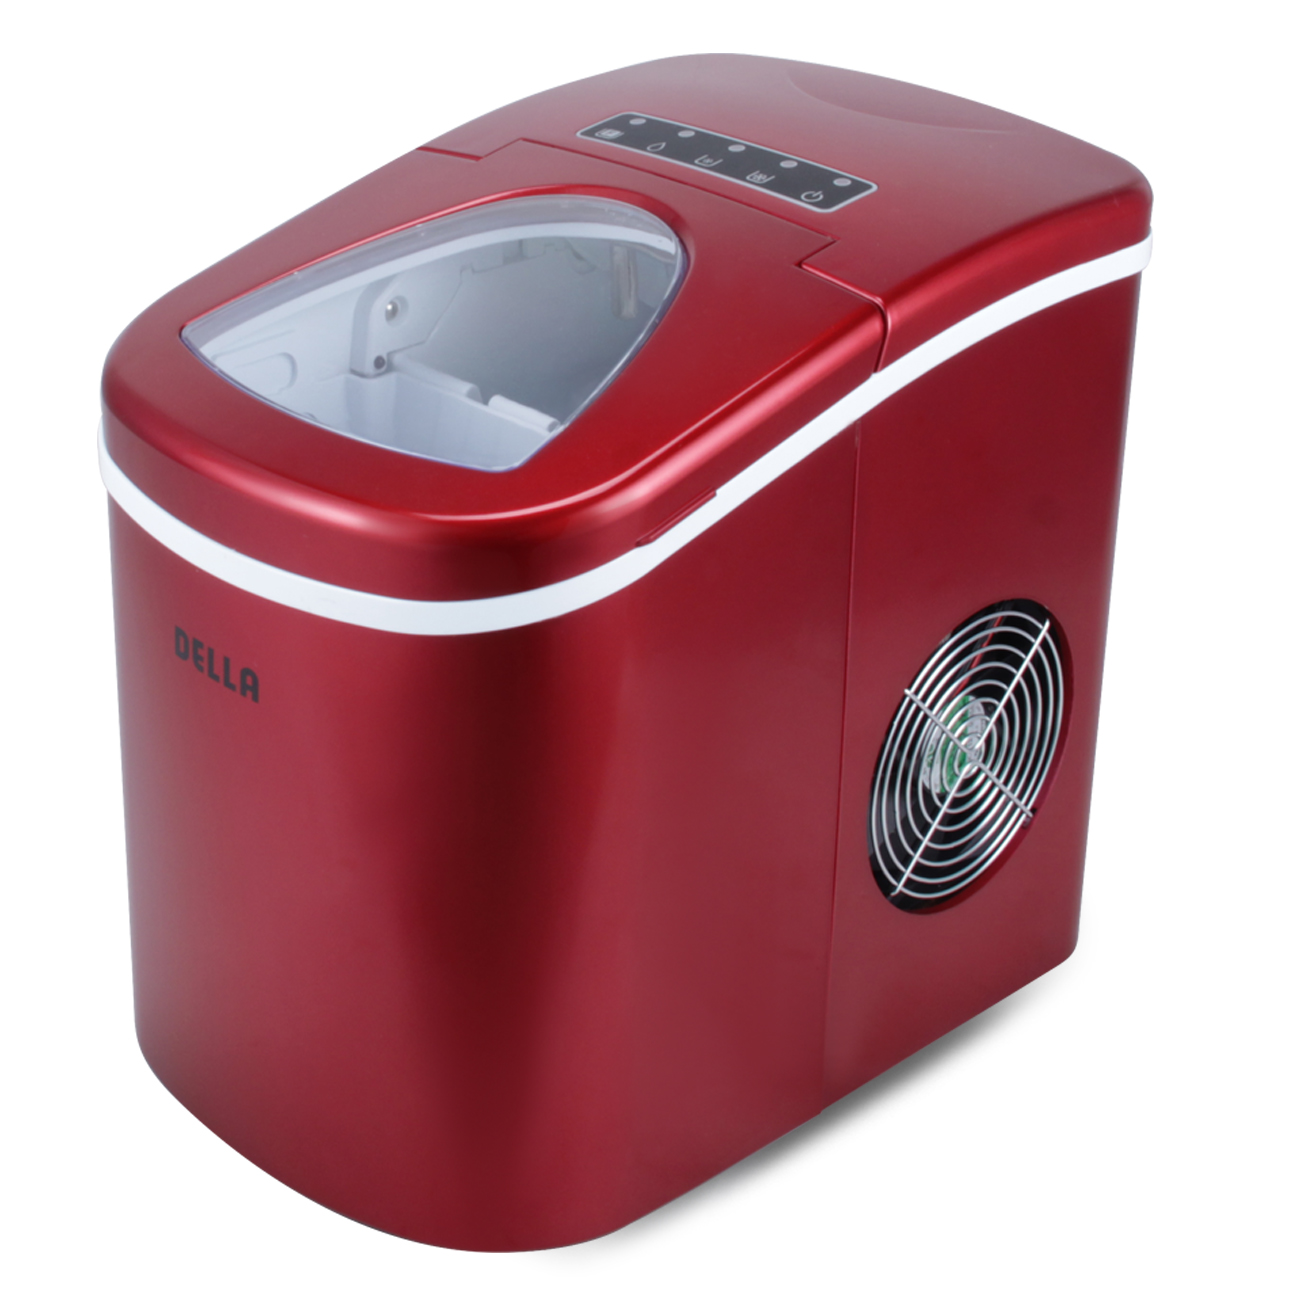 New Portable Red Countertop Compact Ice Cube Maker Machine